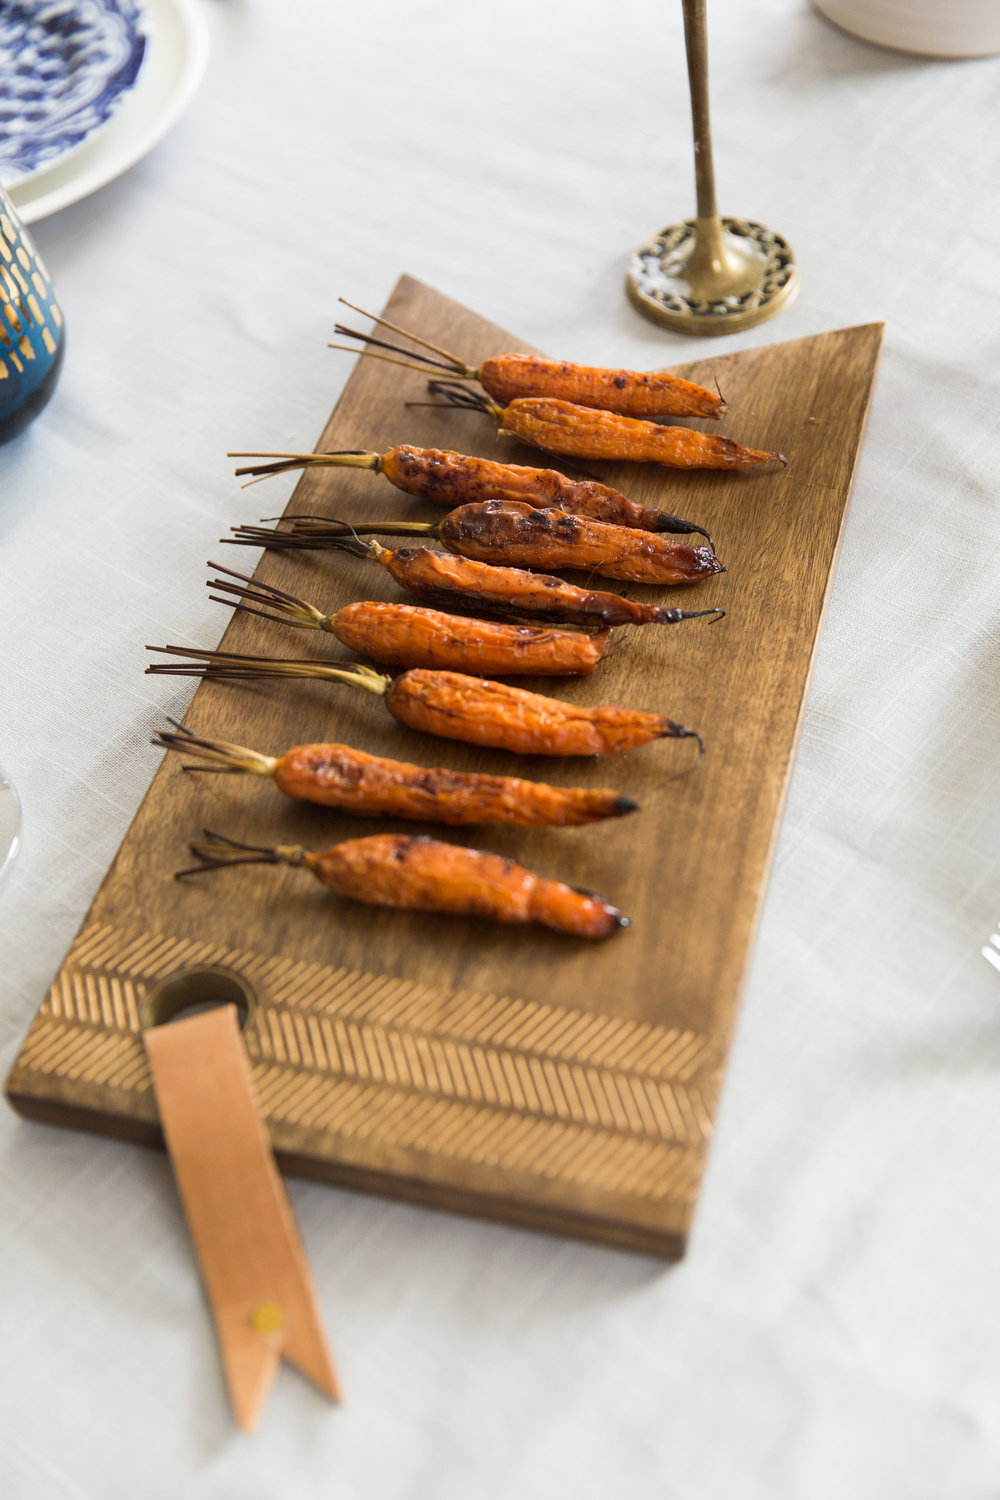 Plated Roasted Carrots